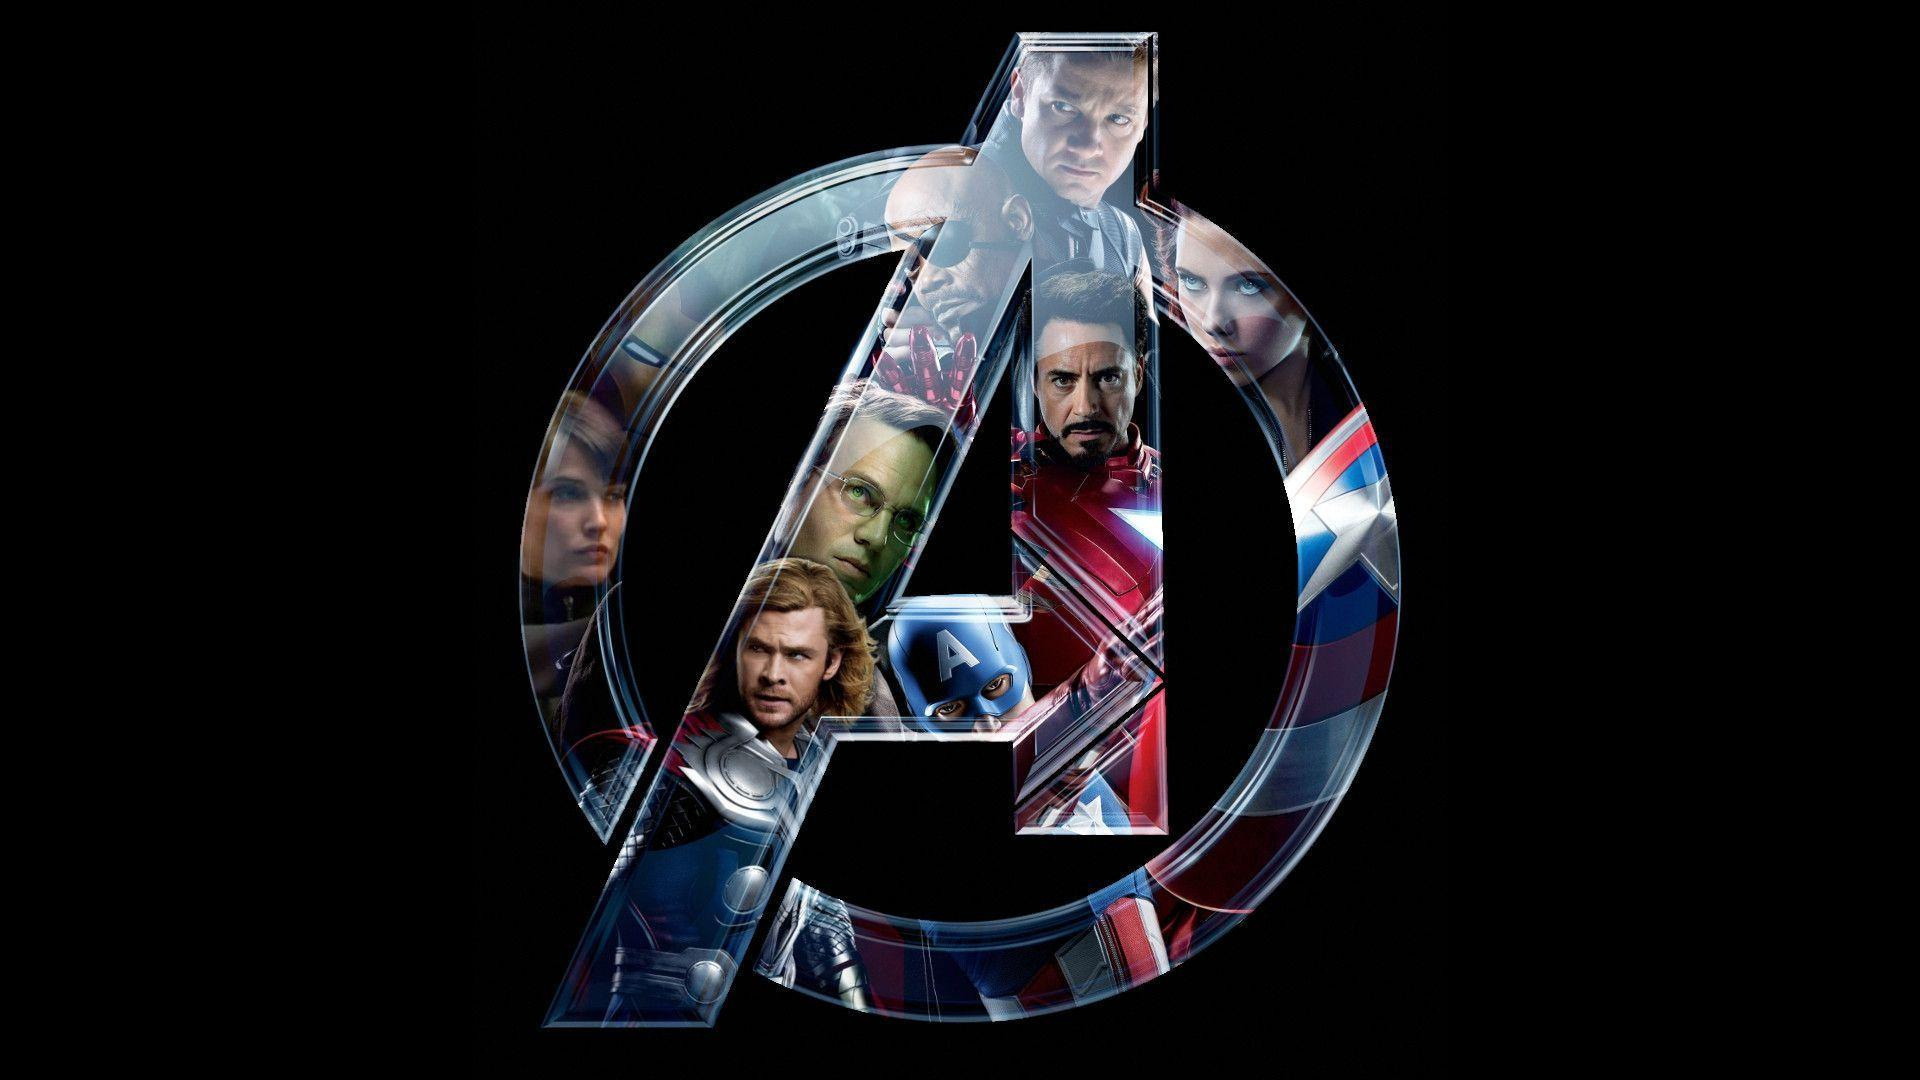 avengers comic logo wallpaper - photo #31